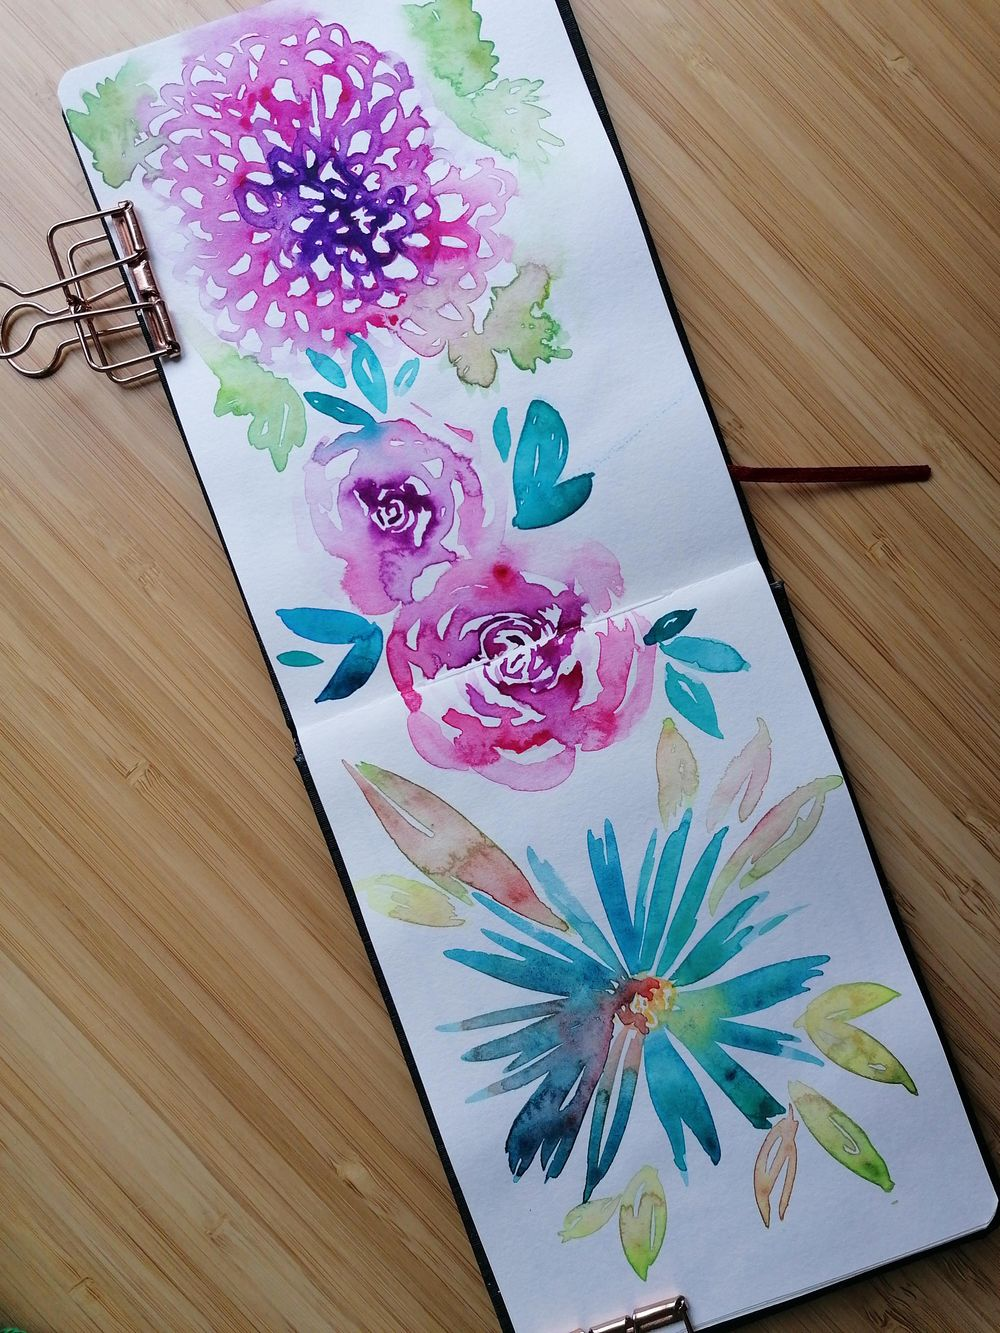 Loose watercolor florals, flowers & butterflies - image 2 - student project